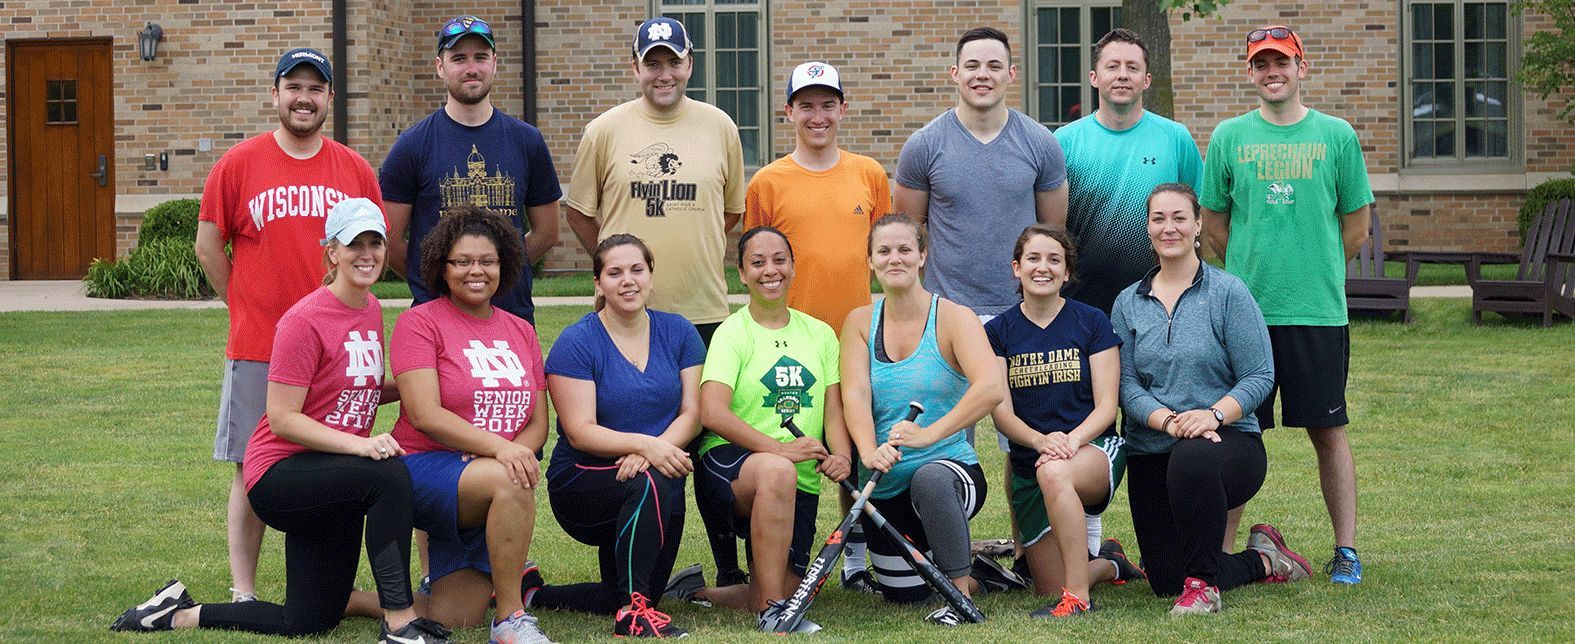 Notre Dame Ylnd Softball Group Summer 2017 Website Featured 1575 X 644 Px